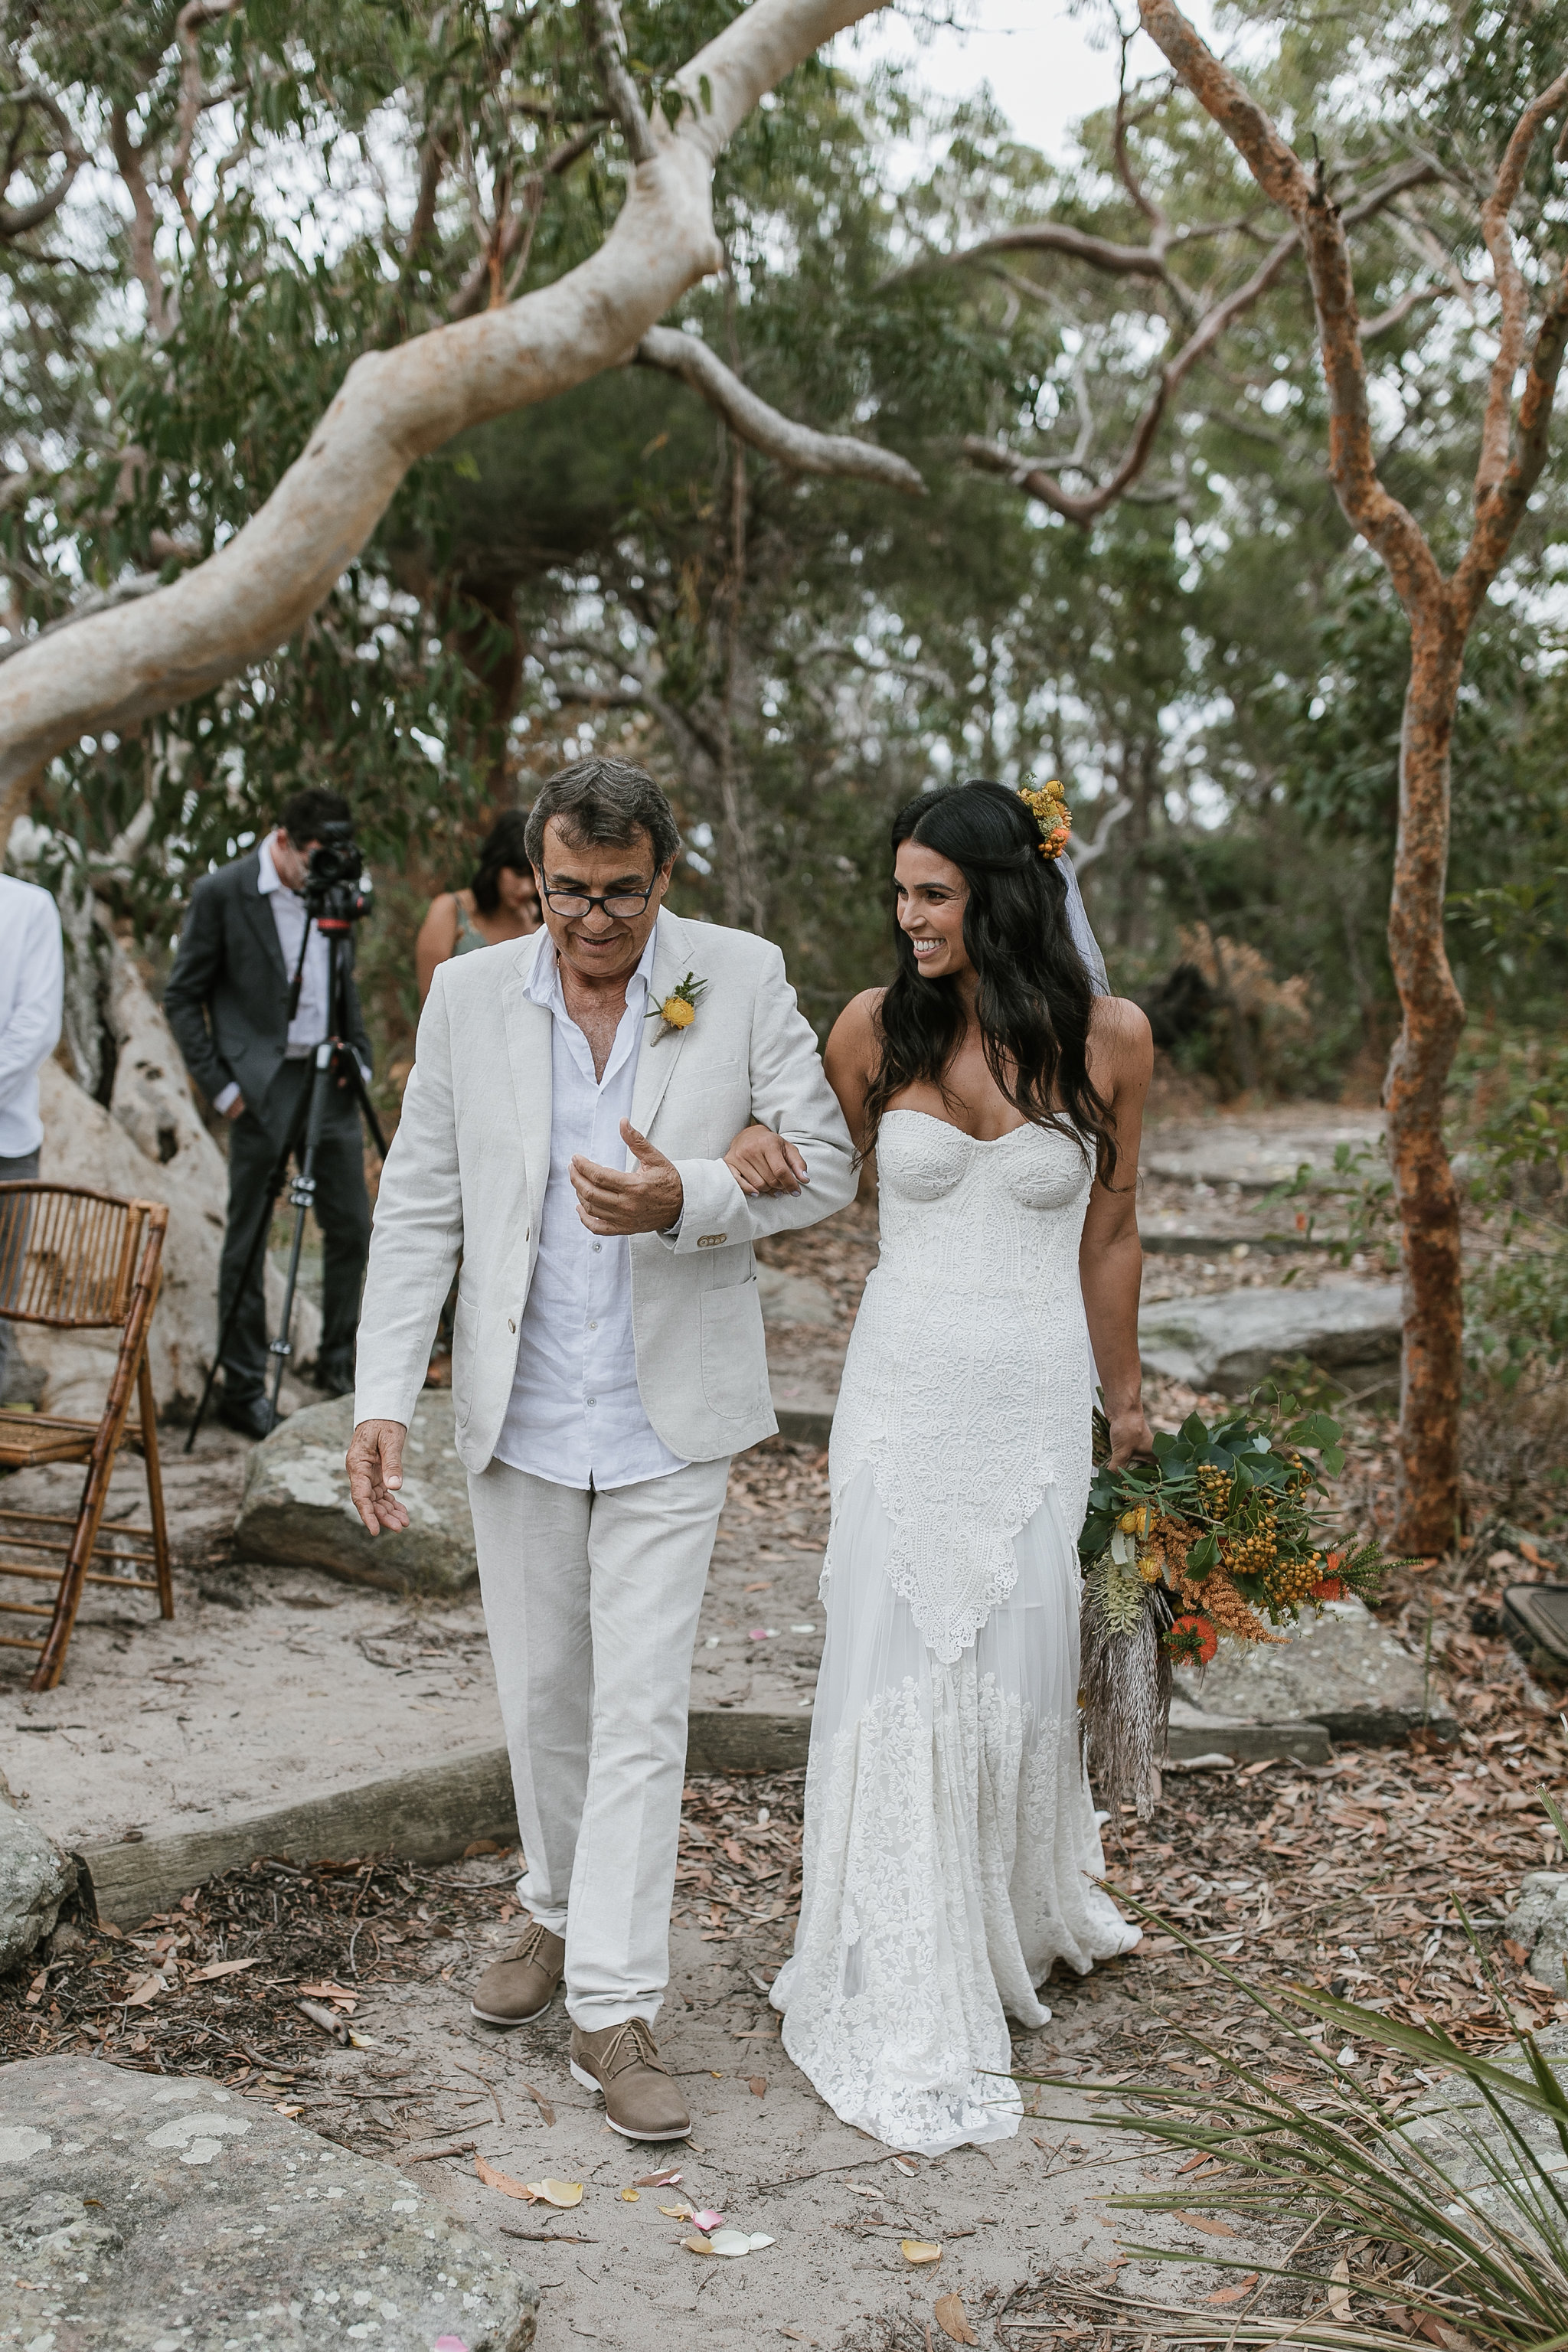 Northern Beaches wedding ceremony styling